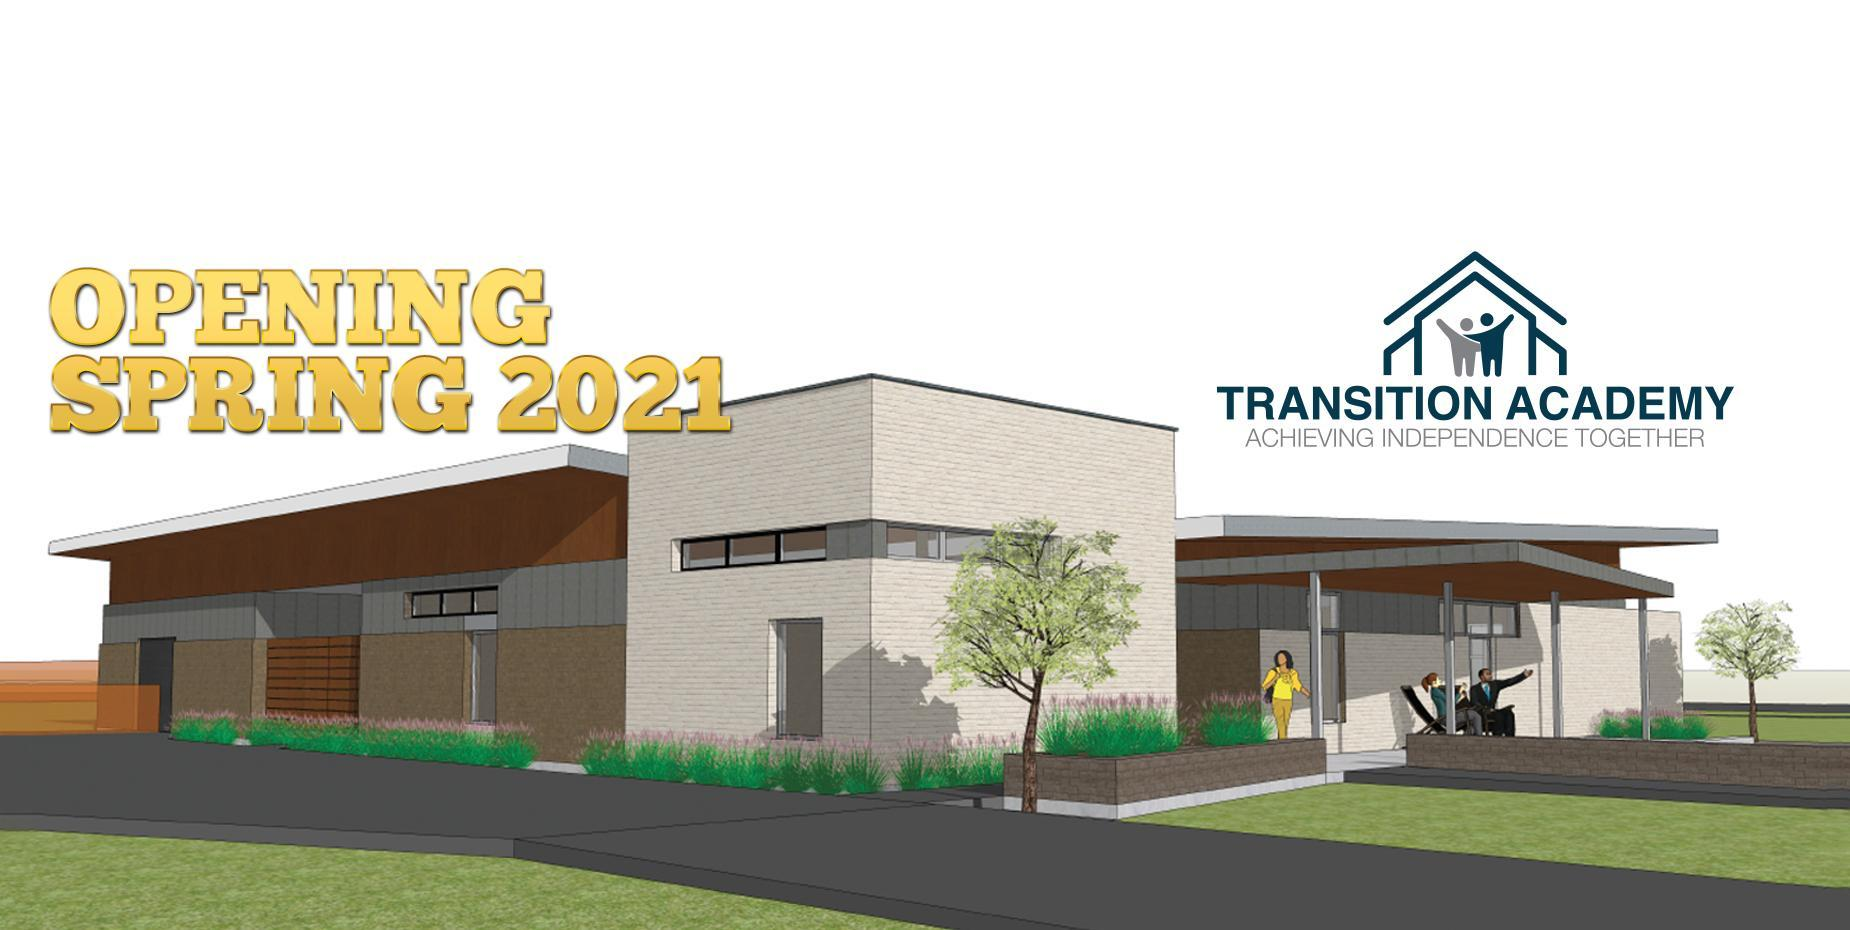 Board approves contract to begin building HCISD Transition Academy